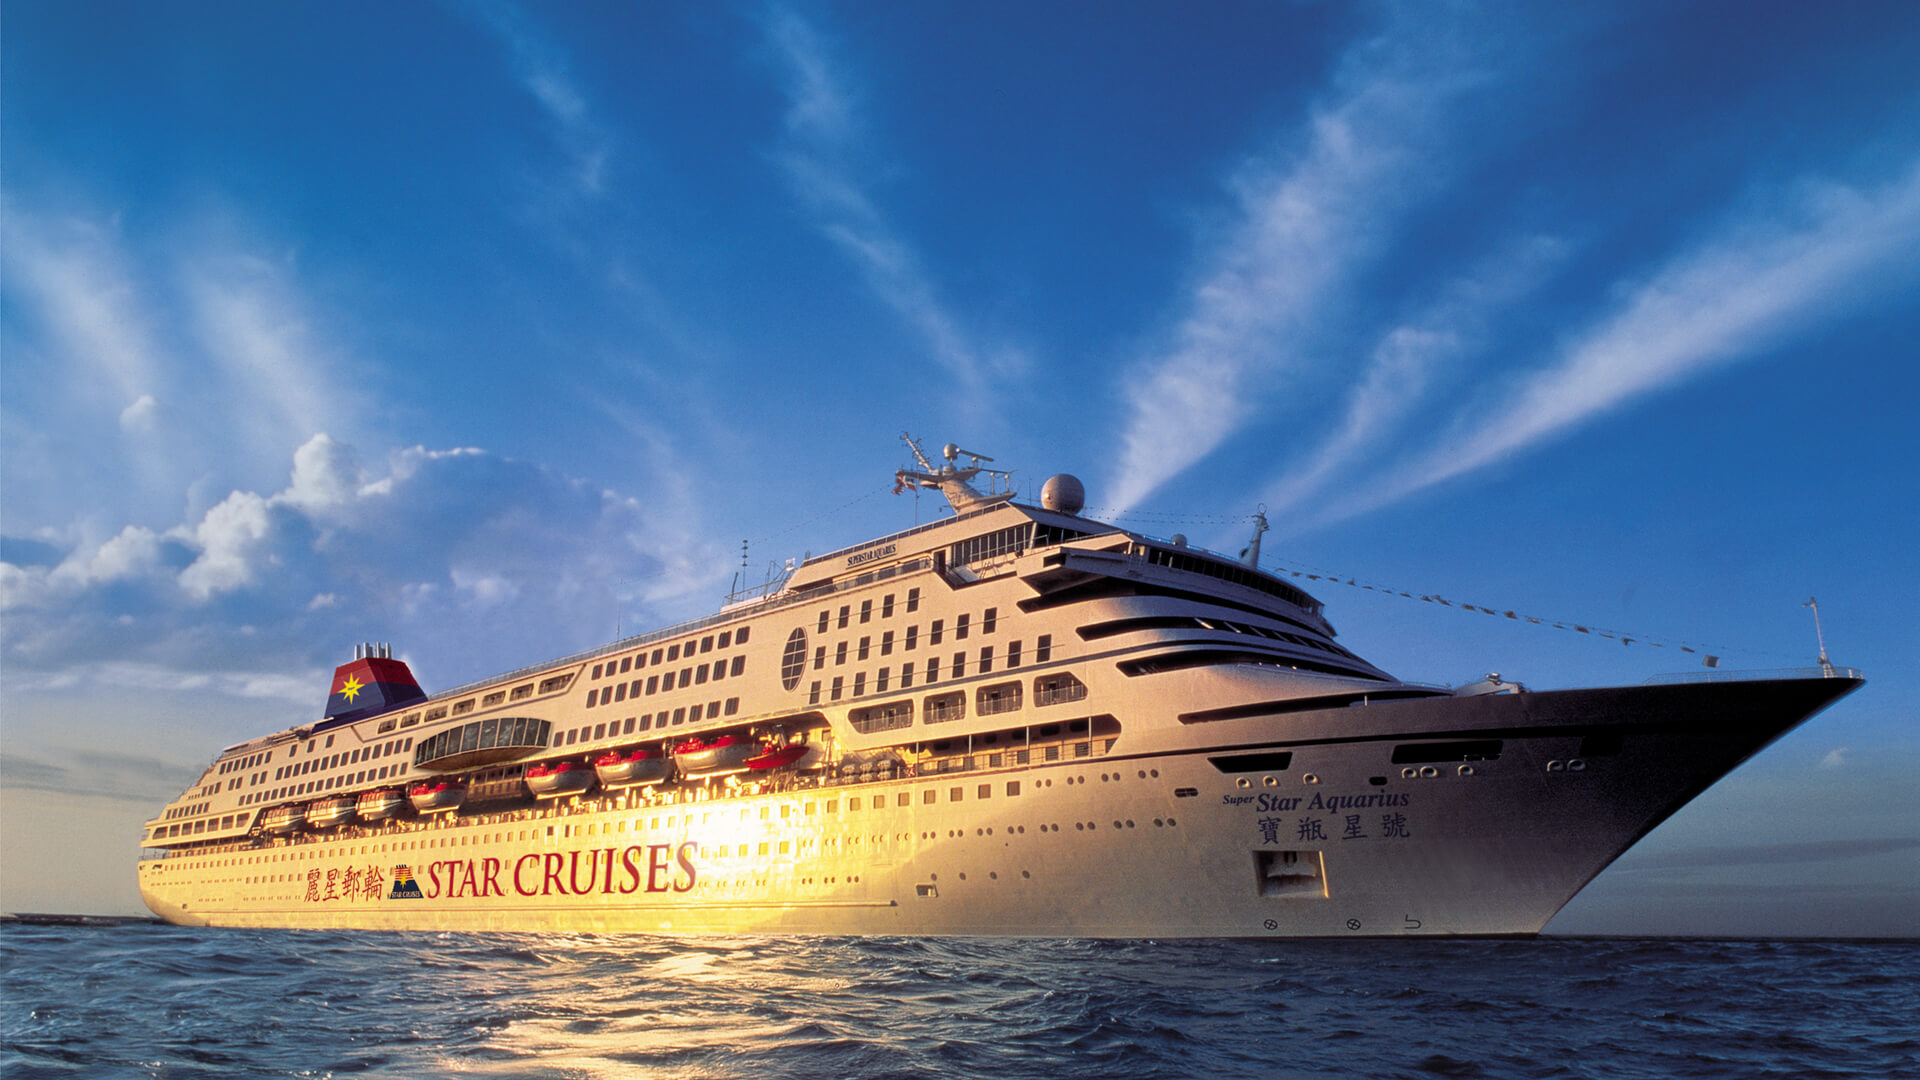 Singapore + Star Cruise Tour Package - 5 Nights 6 Days